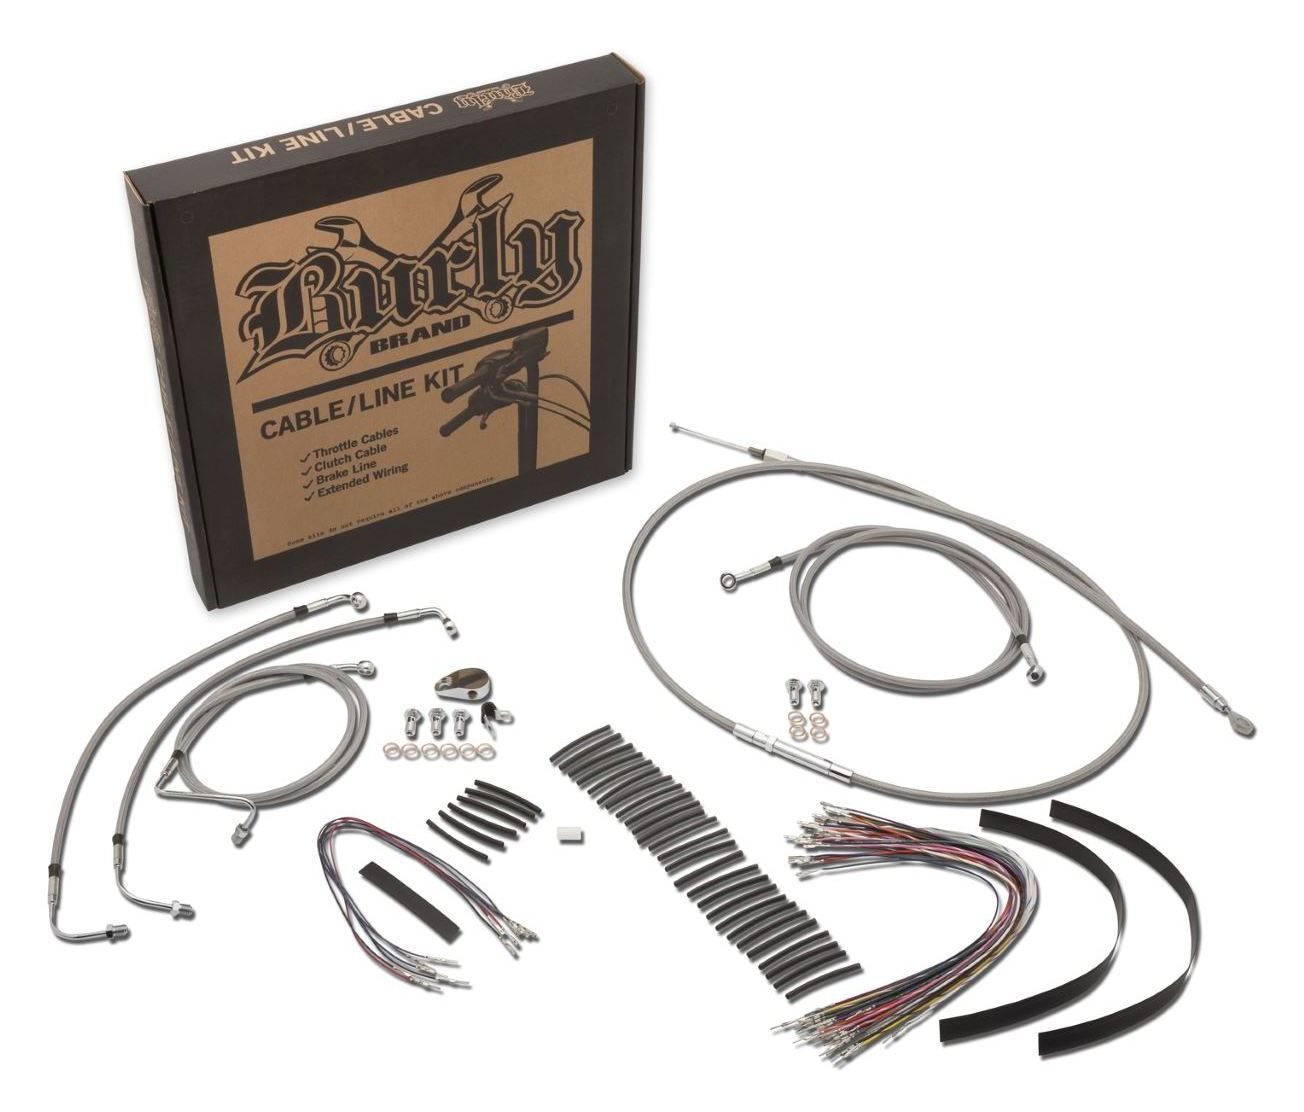 Burly Handlebar Cable Installation Kit For Harley 10 1699 Off Street Glide Throttle Wiring Diagram Revzilla